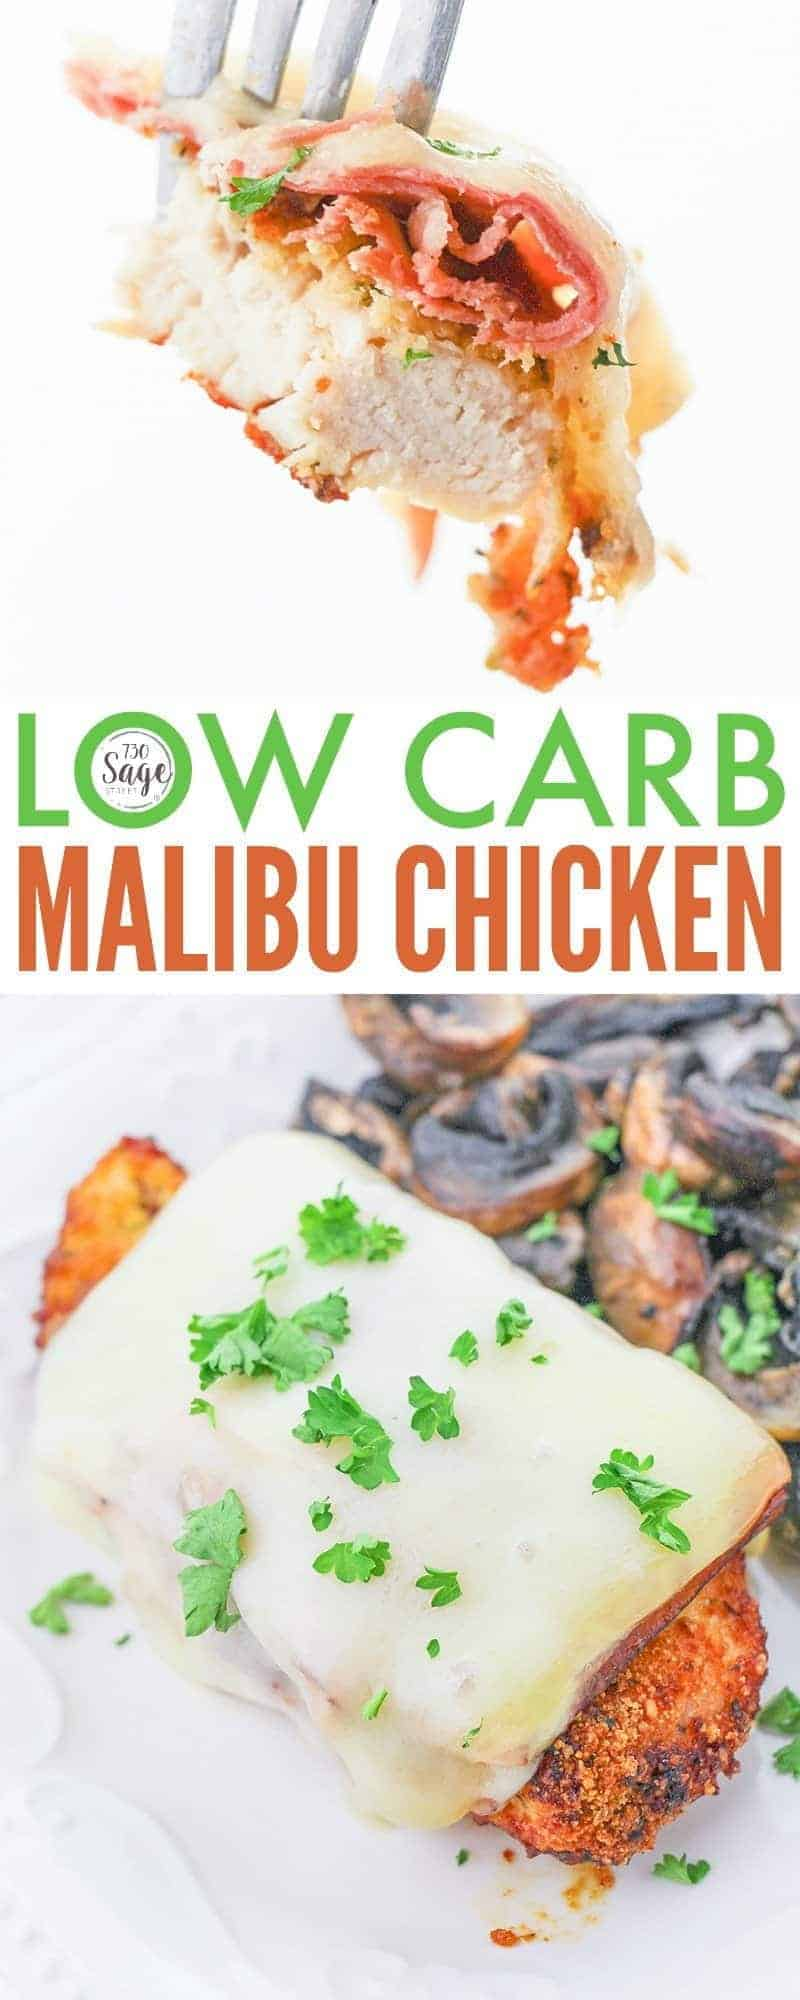 This low carbMalibu Chickenrecipe is an easy weeknight dinner. Made with boneless chicken, low carb breadcrumbs, ham, Swiss cheese and a delicious sauce. Malibu Chicken was made originally famous by the Sizzler, and this recipe is a Sizzler copycat but a keto version. #lowcarb #lowcarbdiet #keto #ketodiet #ketogenicdiet #chickendinner #chickenrecipe #copycat #copycatrecipe #easy #easyrecipe #recipe #recipeideas